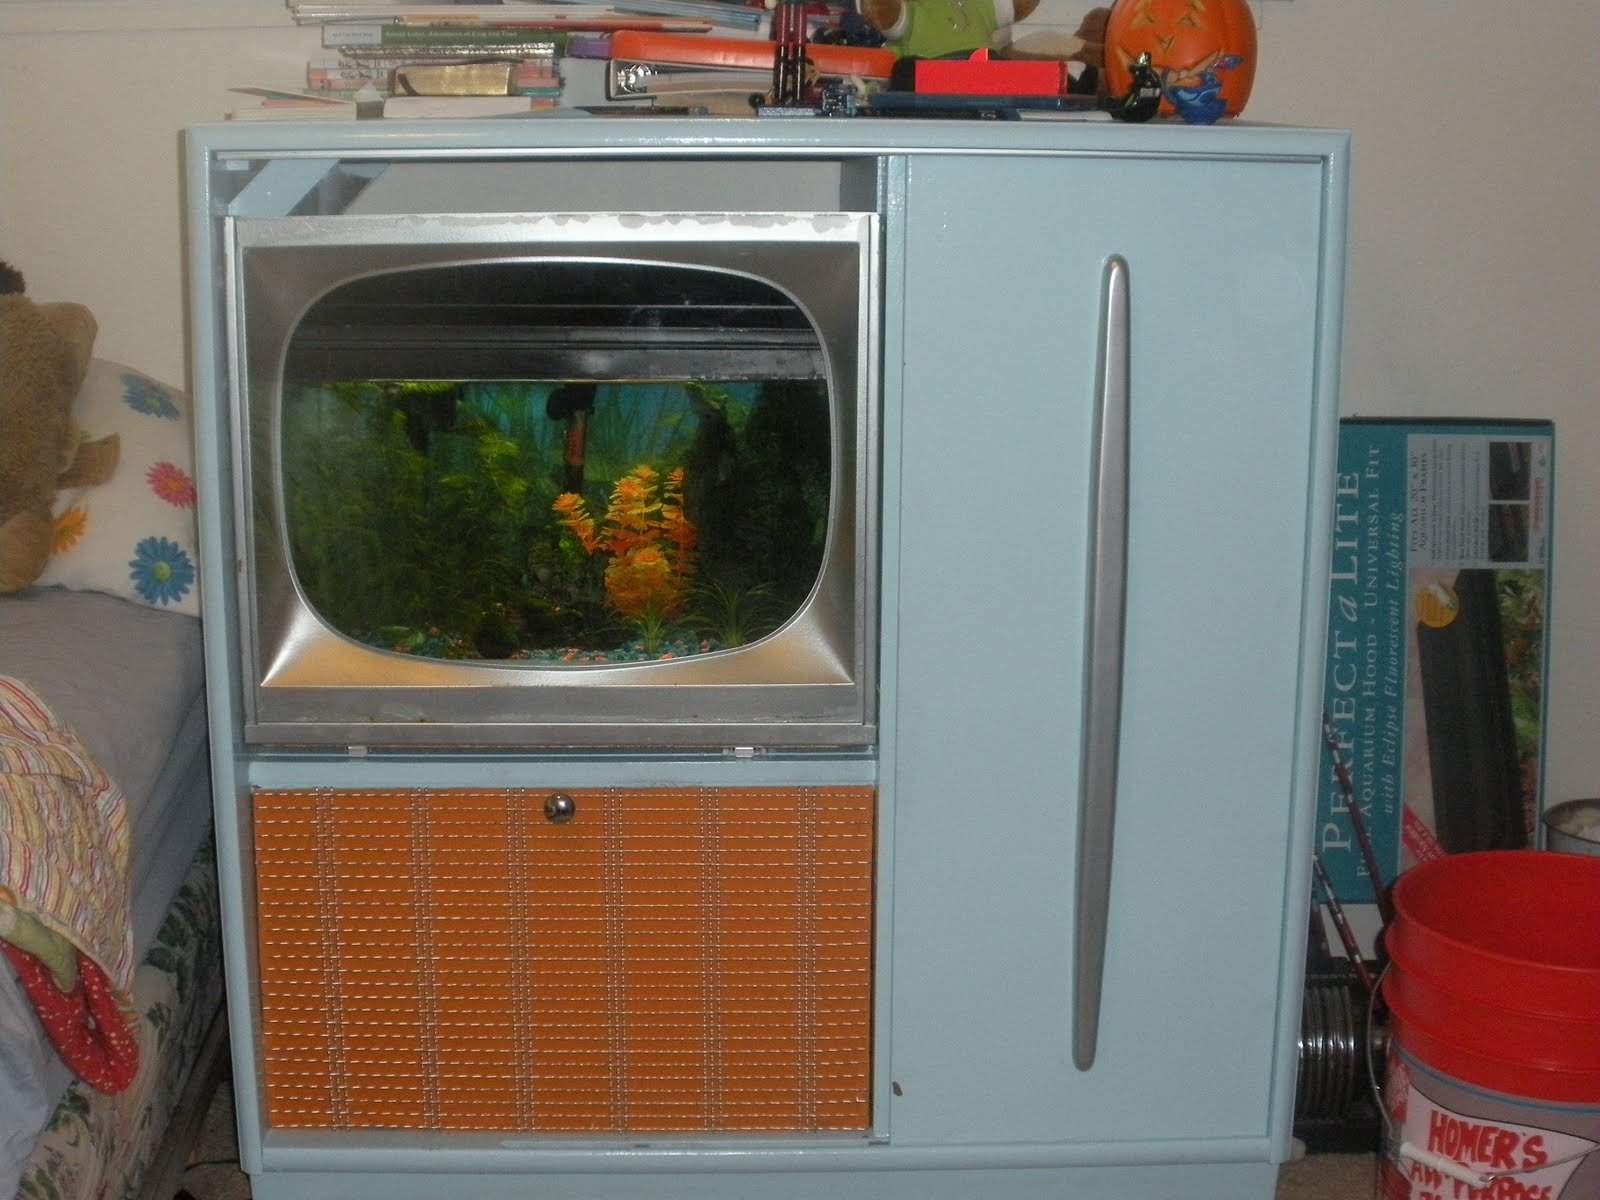 Fish tank tv stand - After Using The Tank Like This For A Few Weeks I Realized That I Made A Major Mistake In Design Instead Of Pulling The Tank Out Through The Front